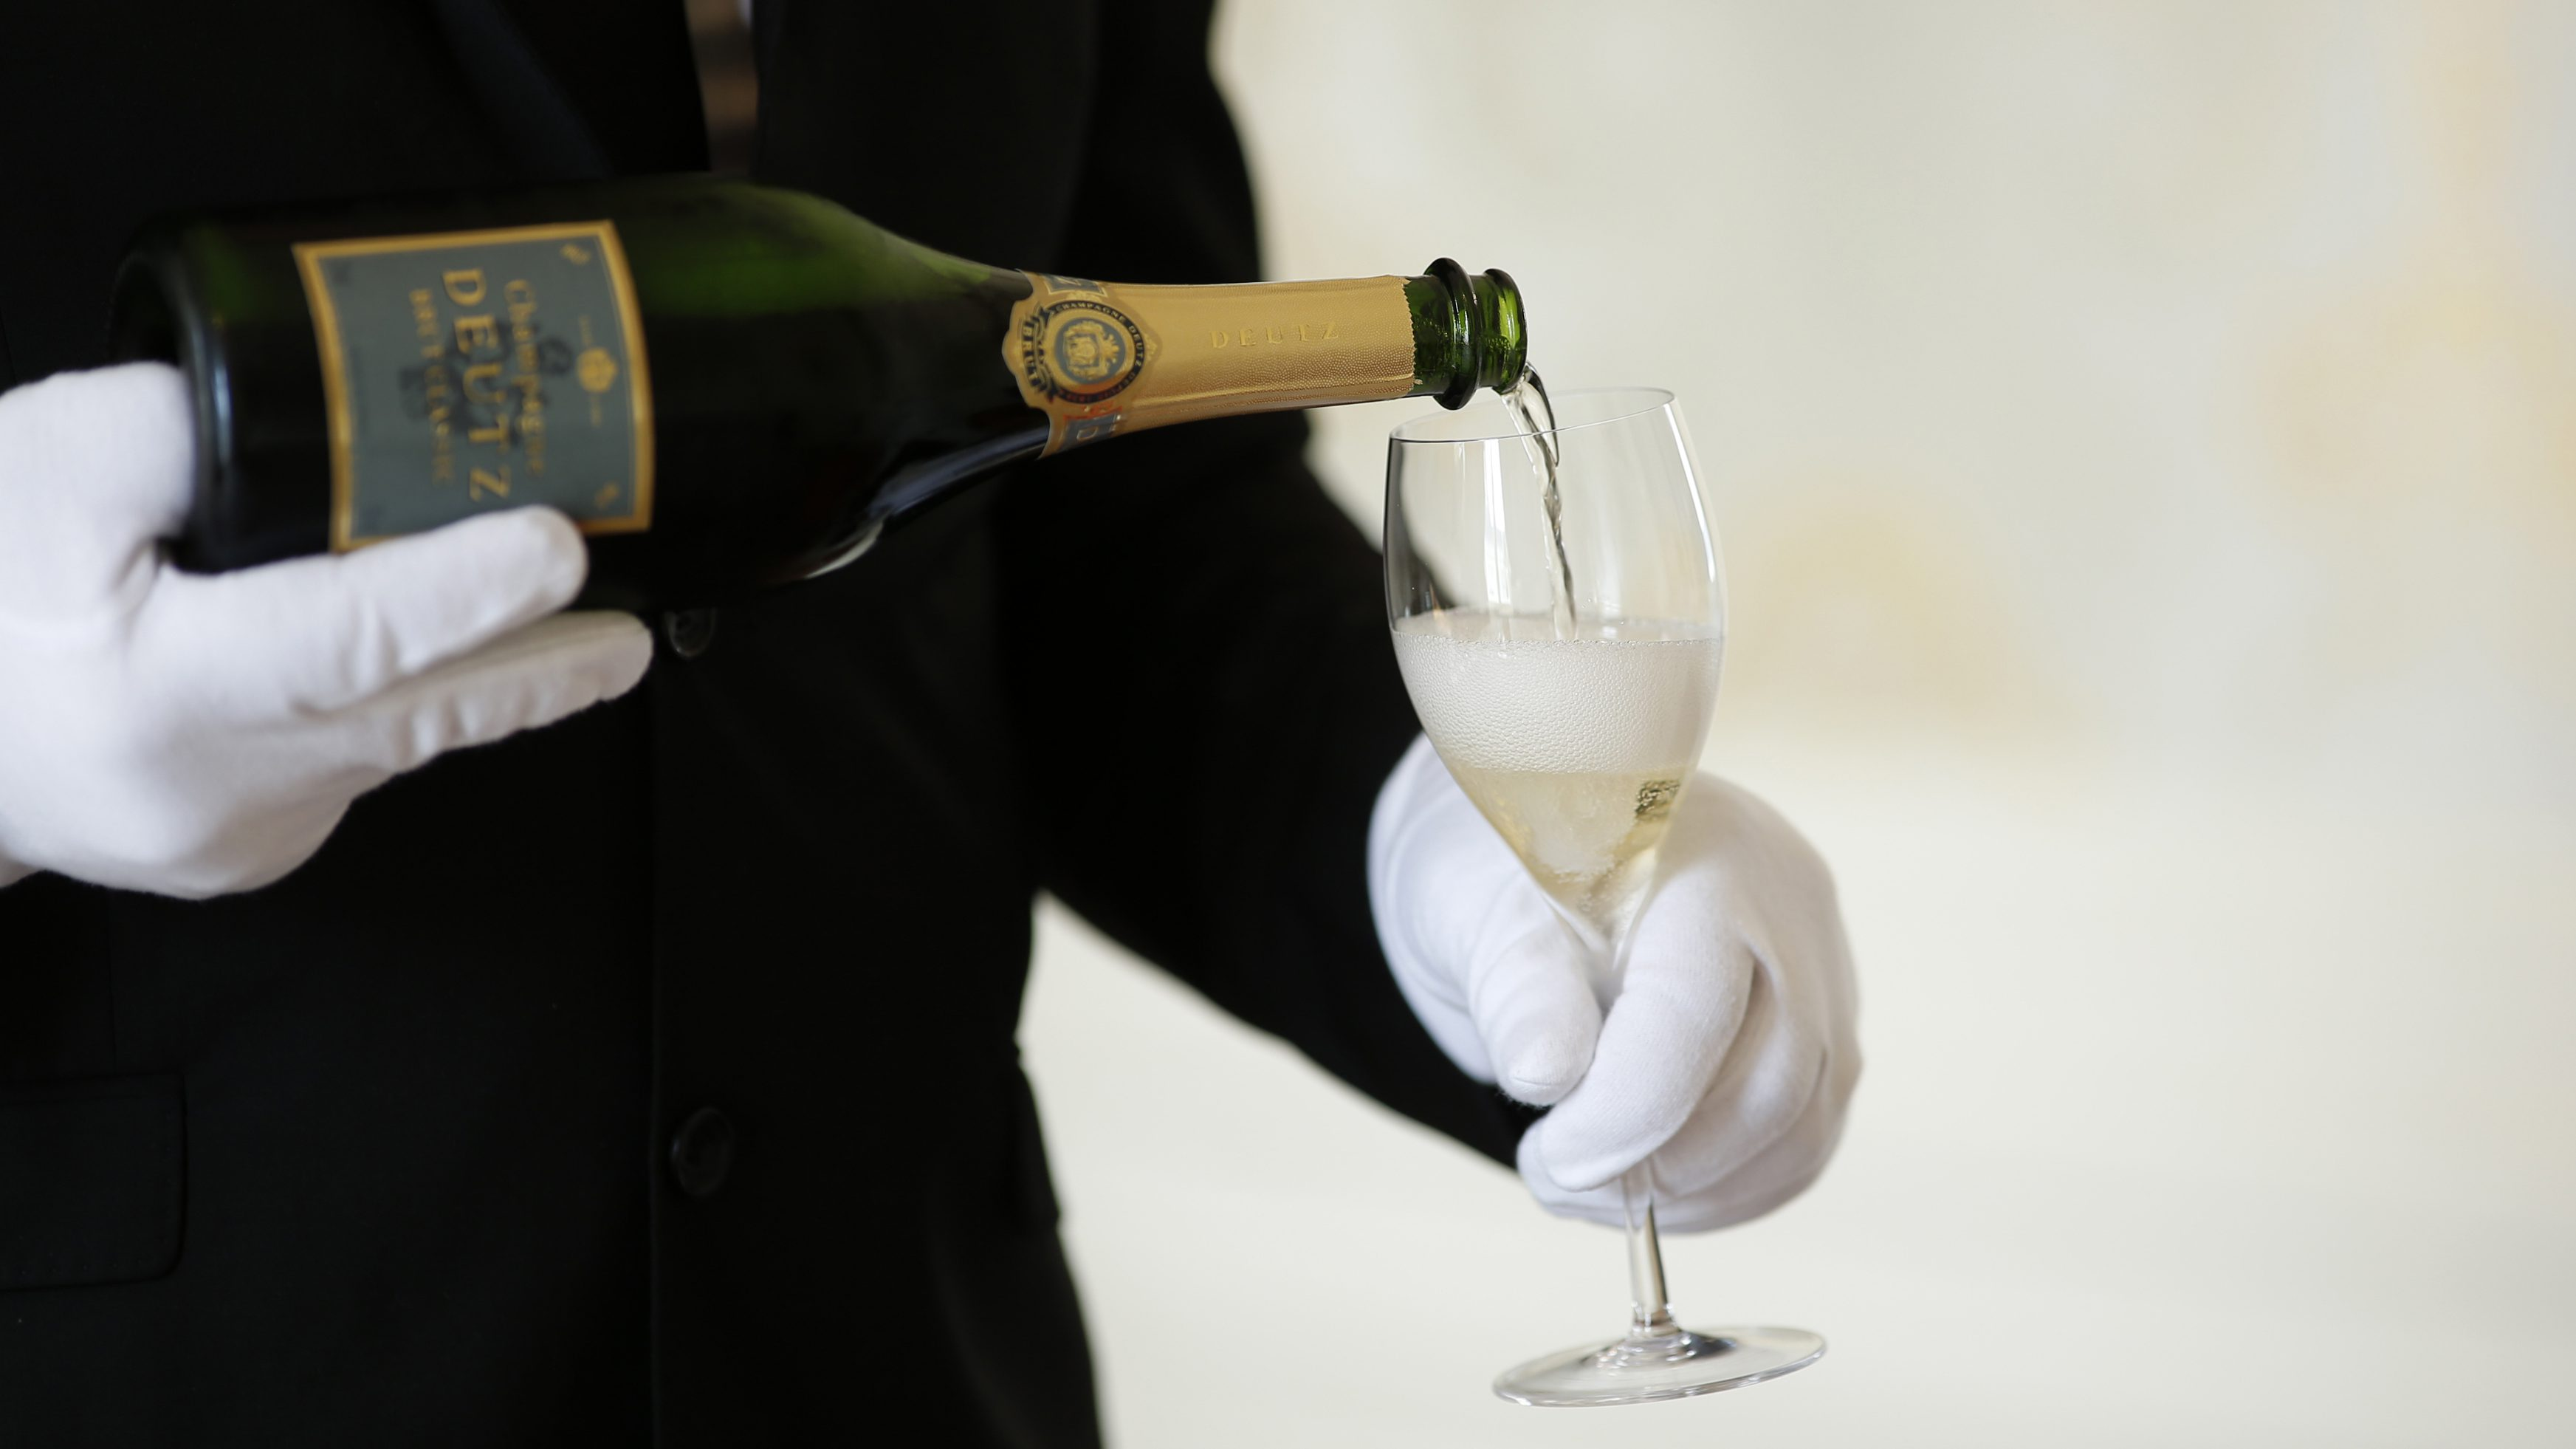 FILE PHOTO An employee serves a glass of Champagne during the traditional wine harvest at the Champagne house Deutz in Ay